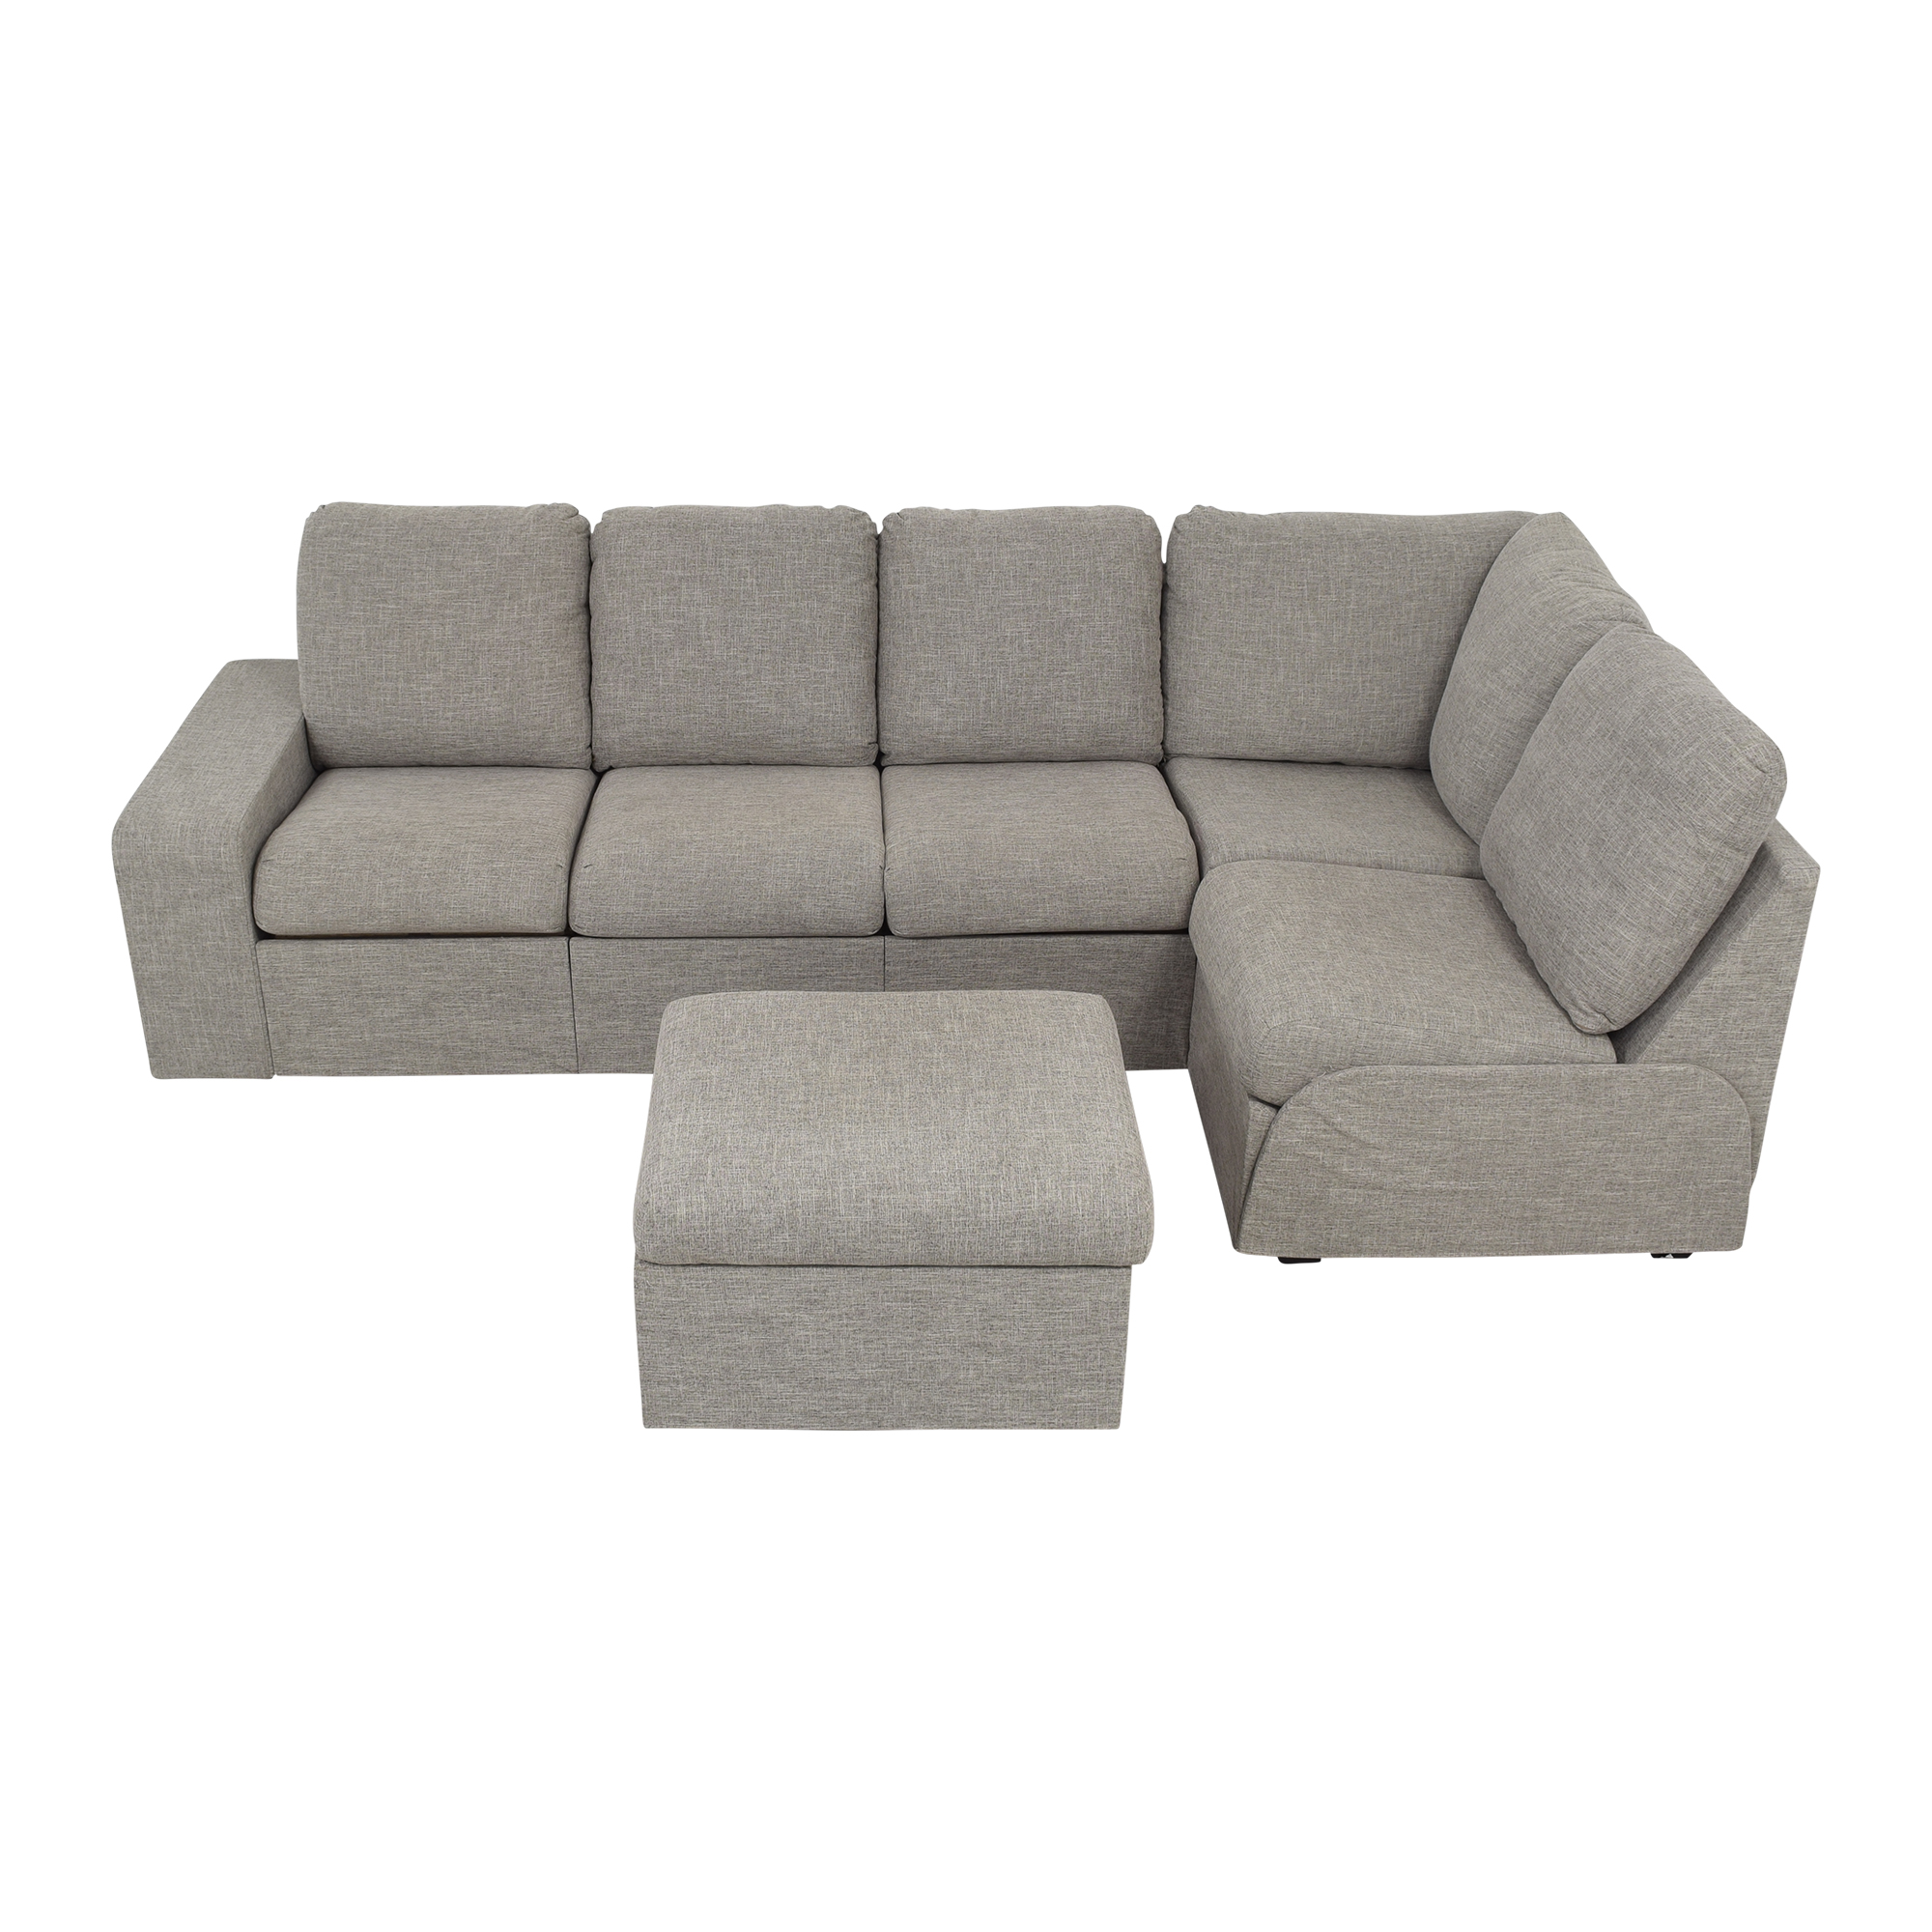 Home Reserve Home Reserve Jovie Sectional with Ottoman coupon